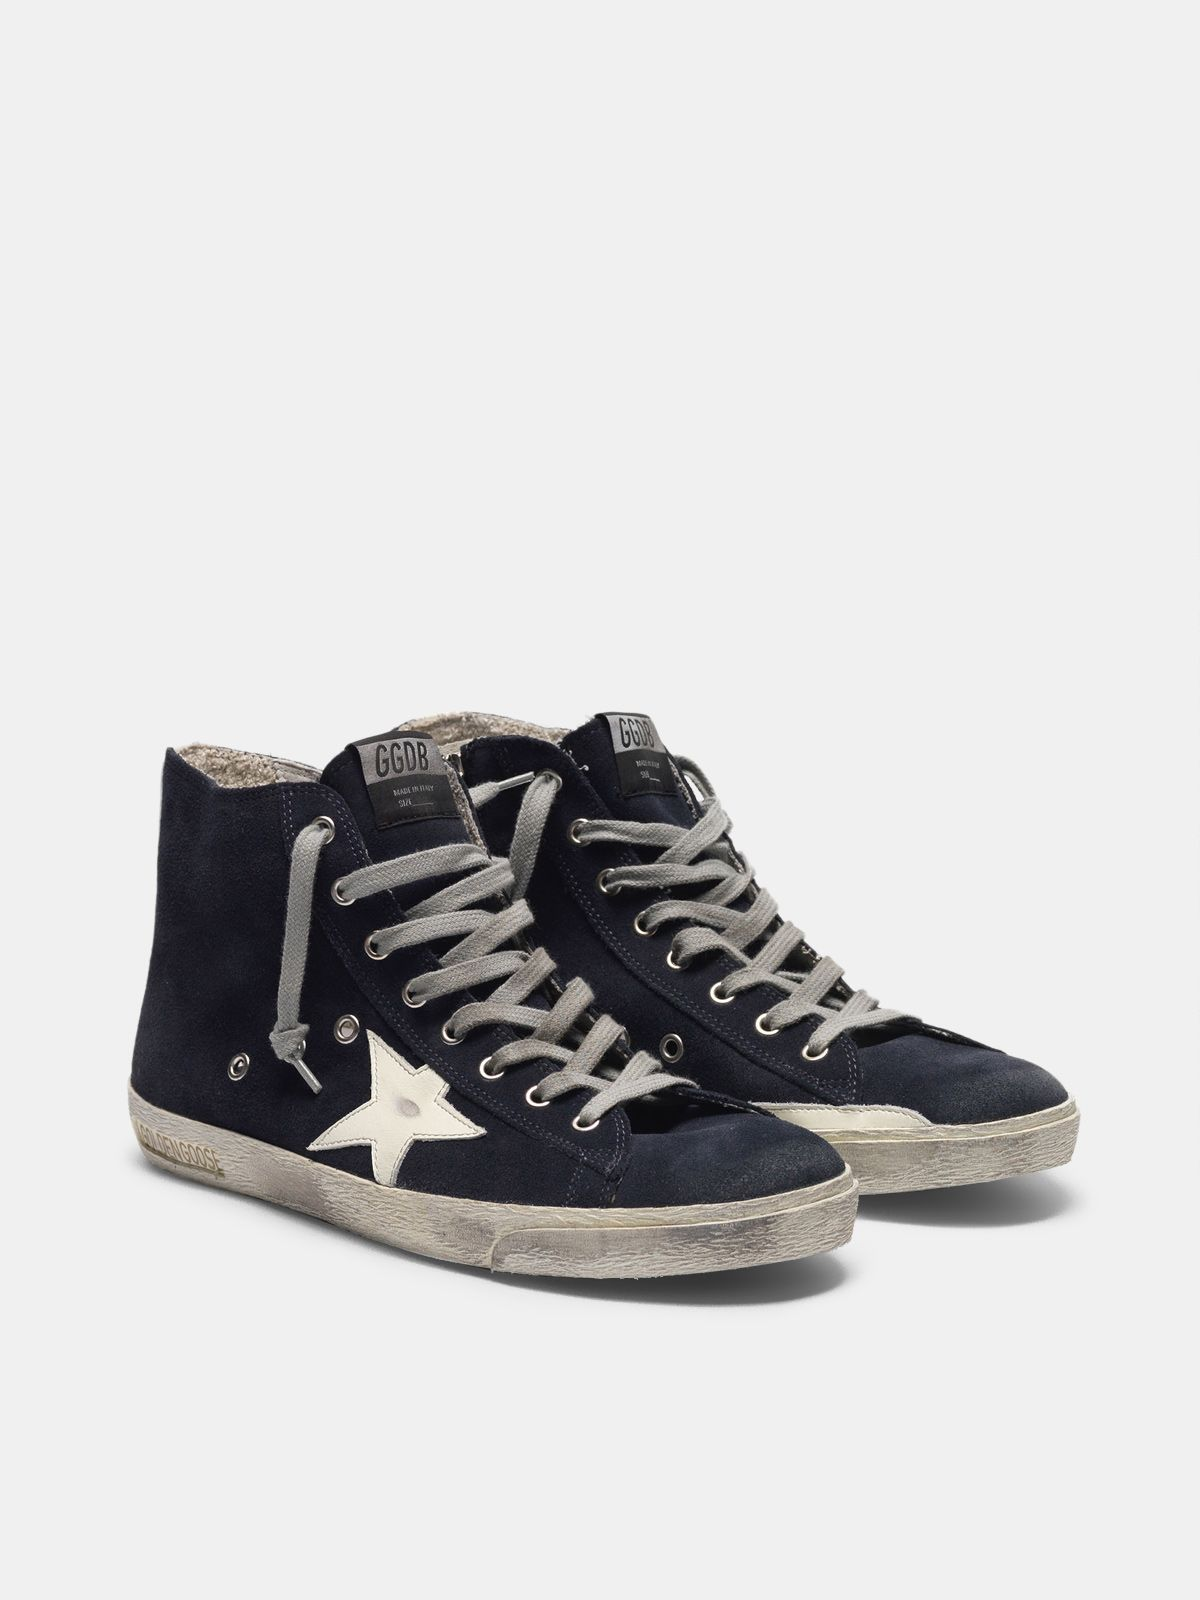 Golden Goose - Francy sneakers in leather with leather star and heel tab in